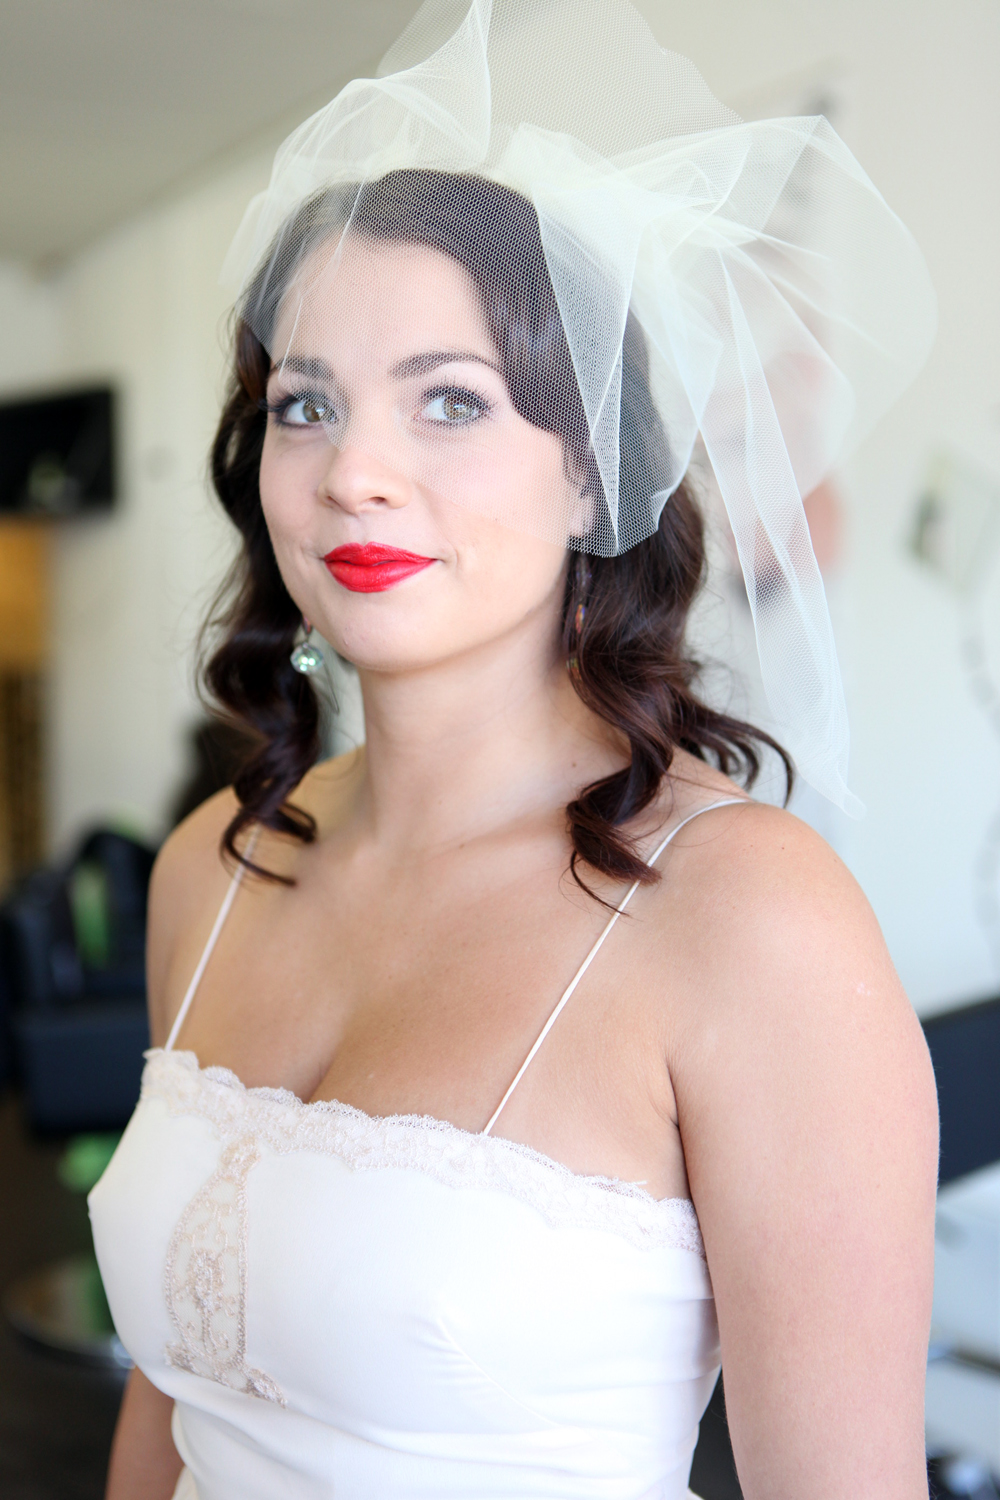 kat as bride.jpg